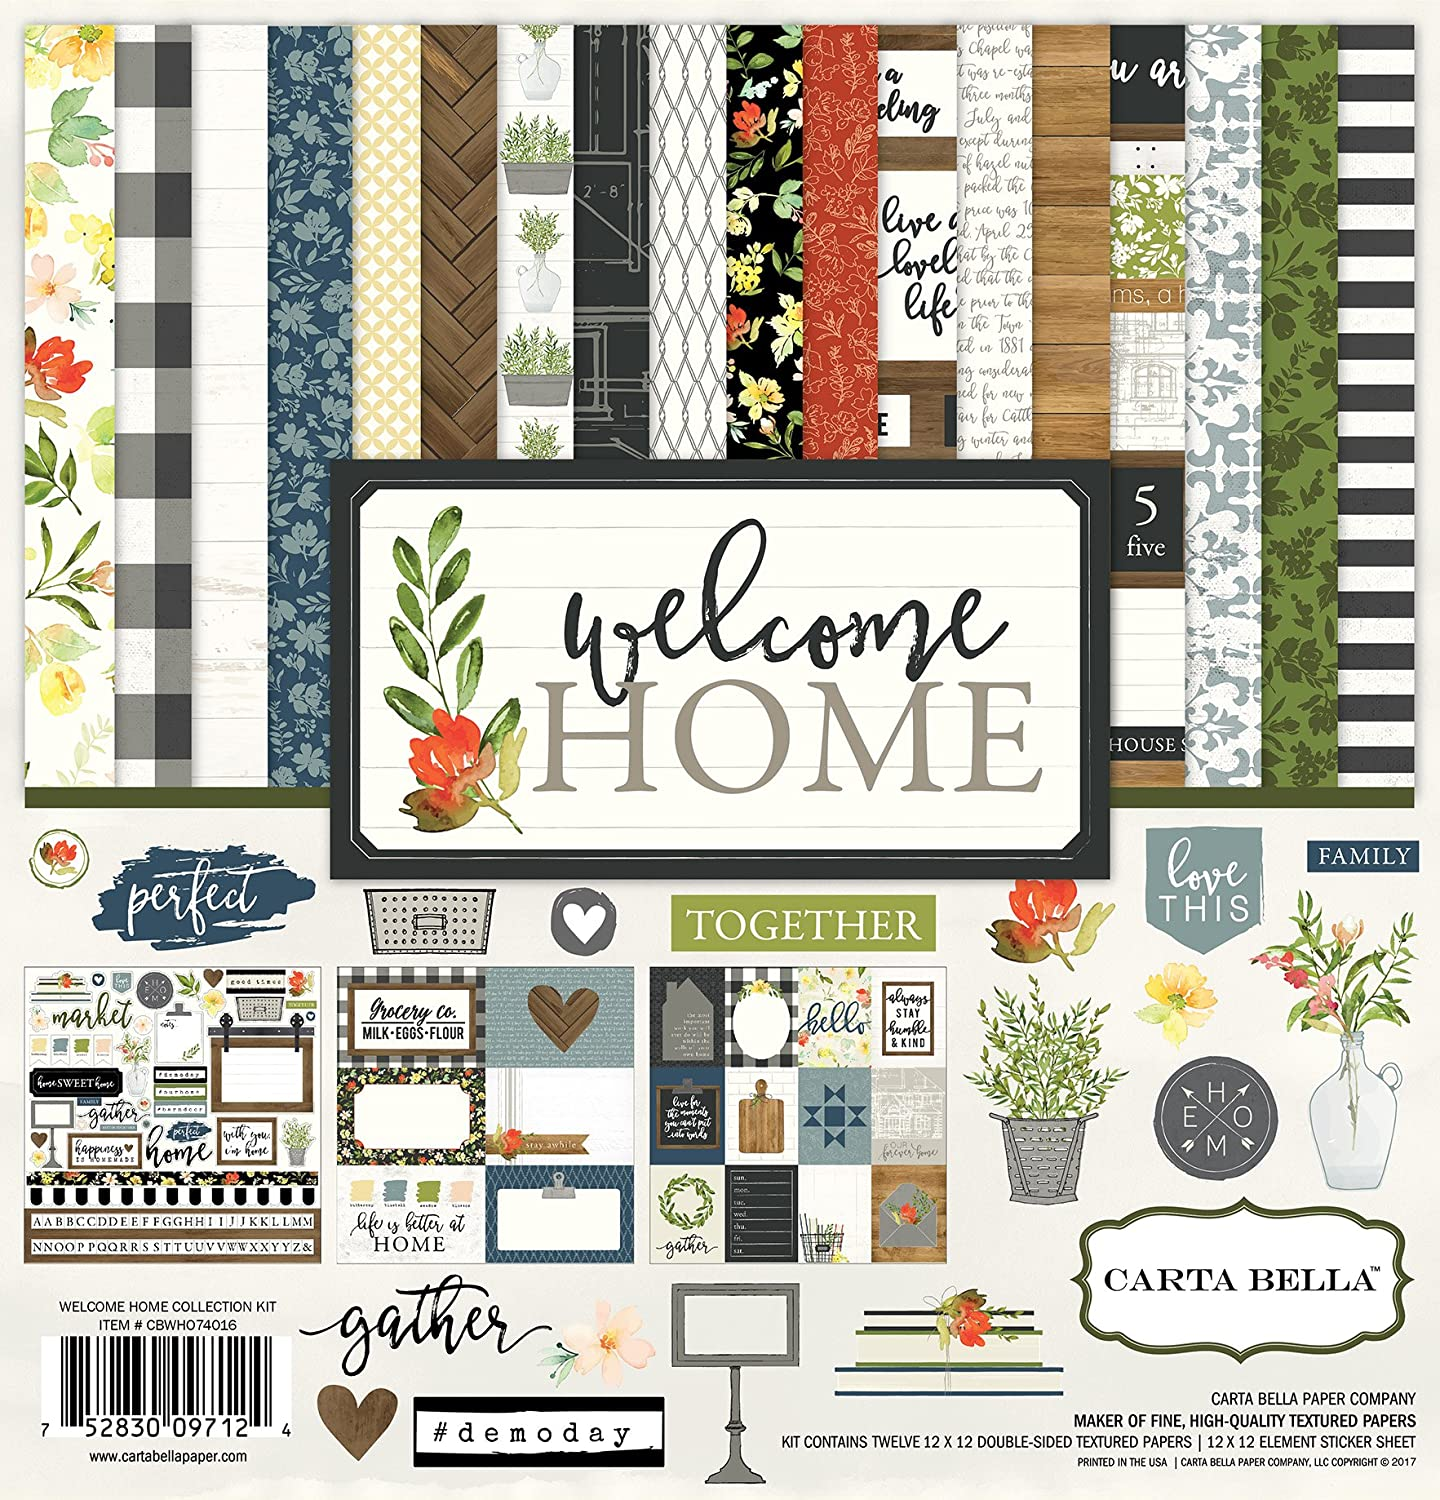 Carta Bella Paper Company Welcome Home Collection Kit Echo Park Paper Company CBWHO74016